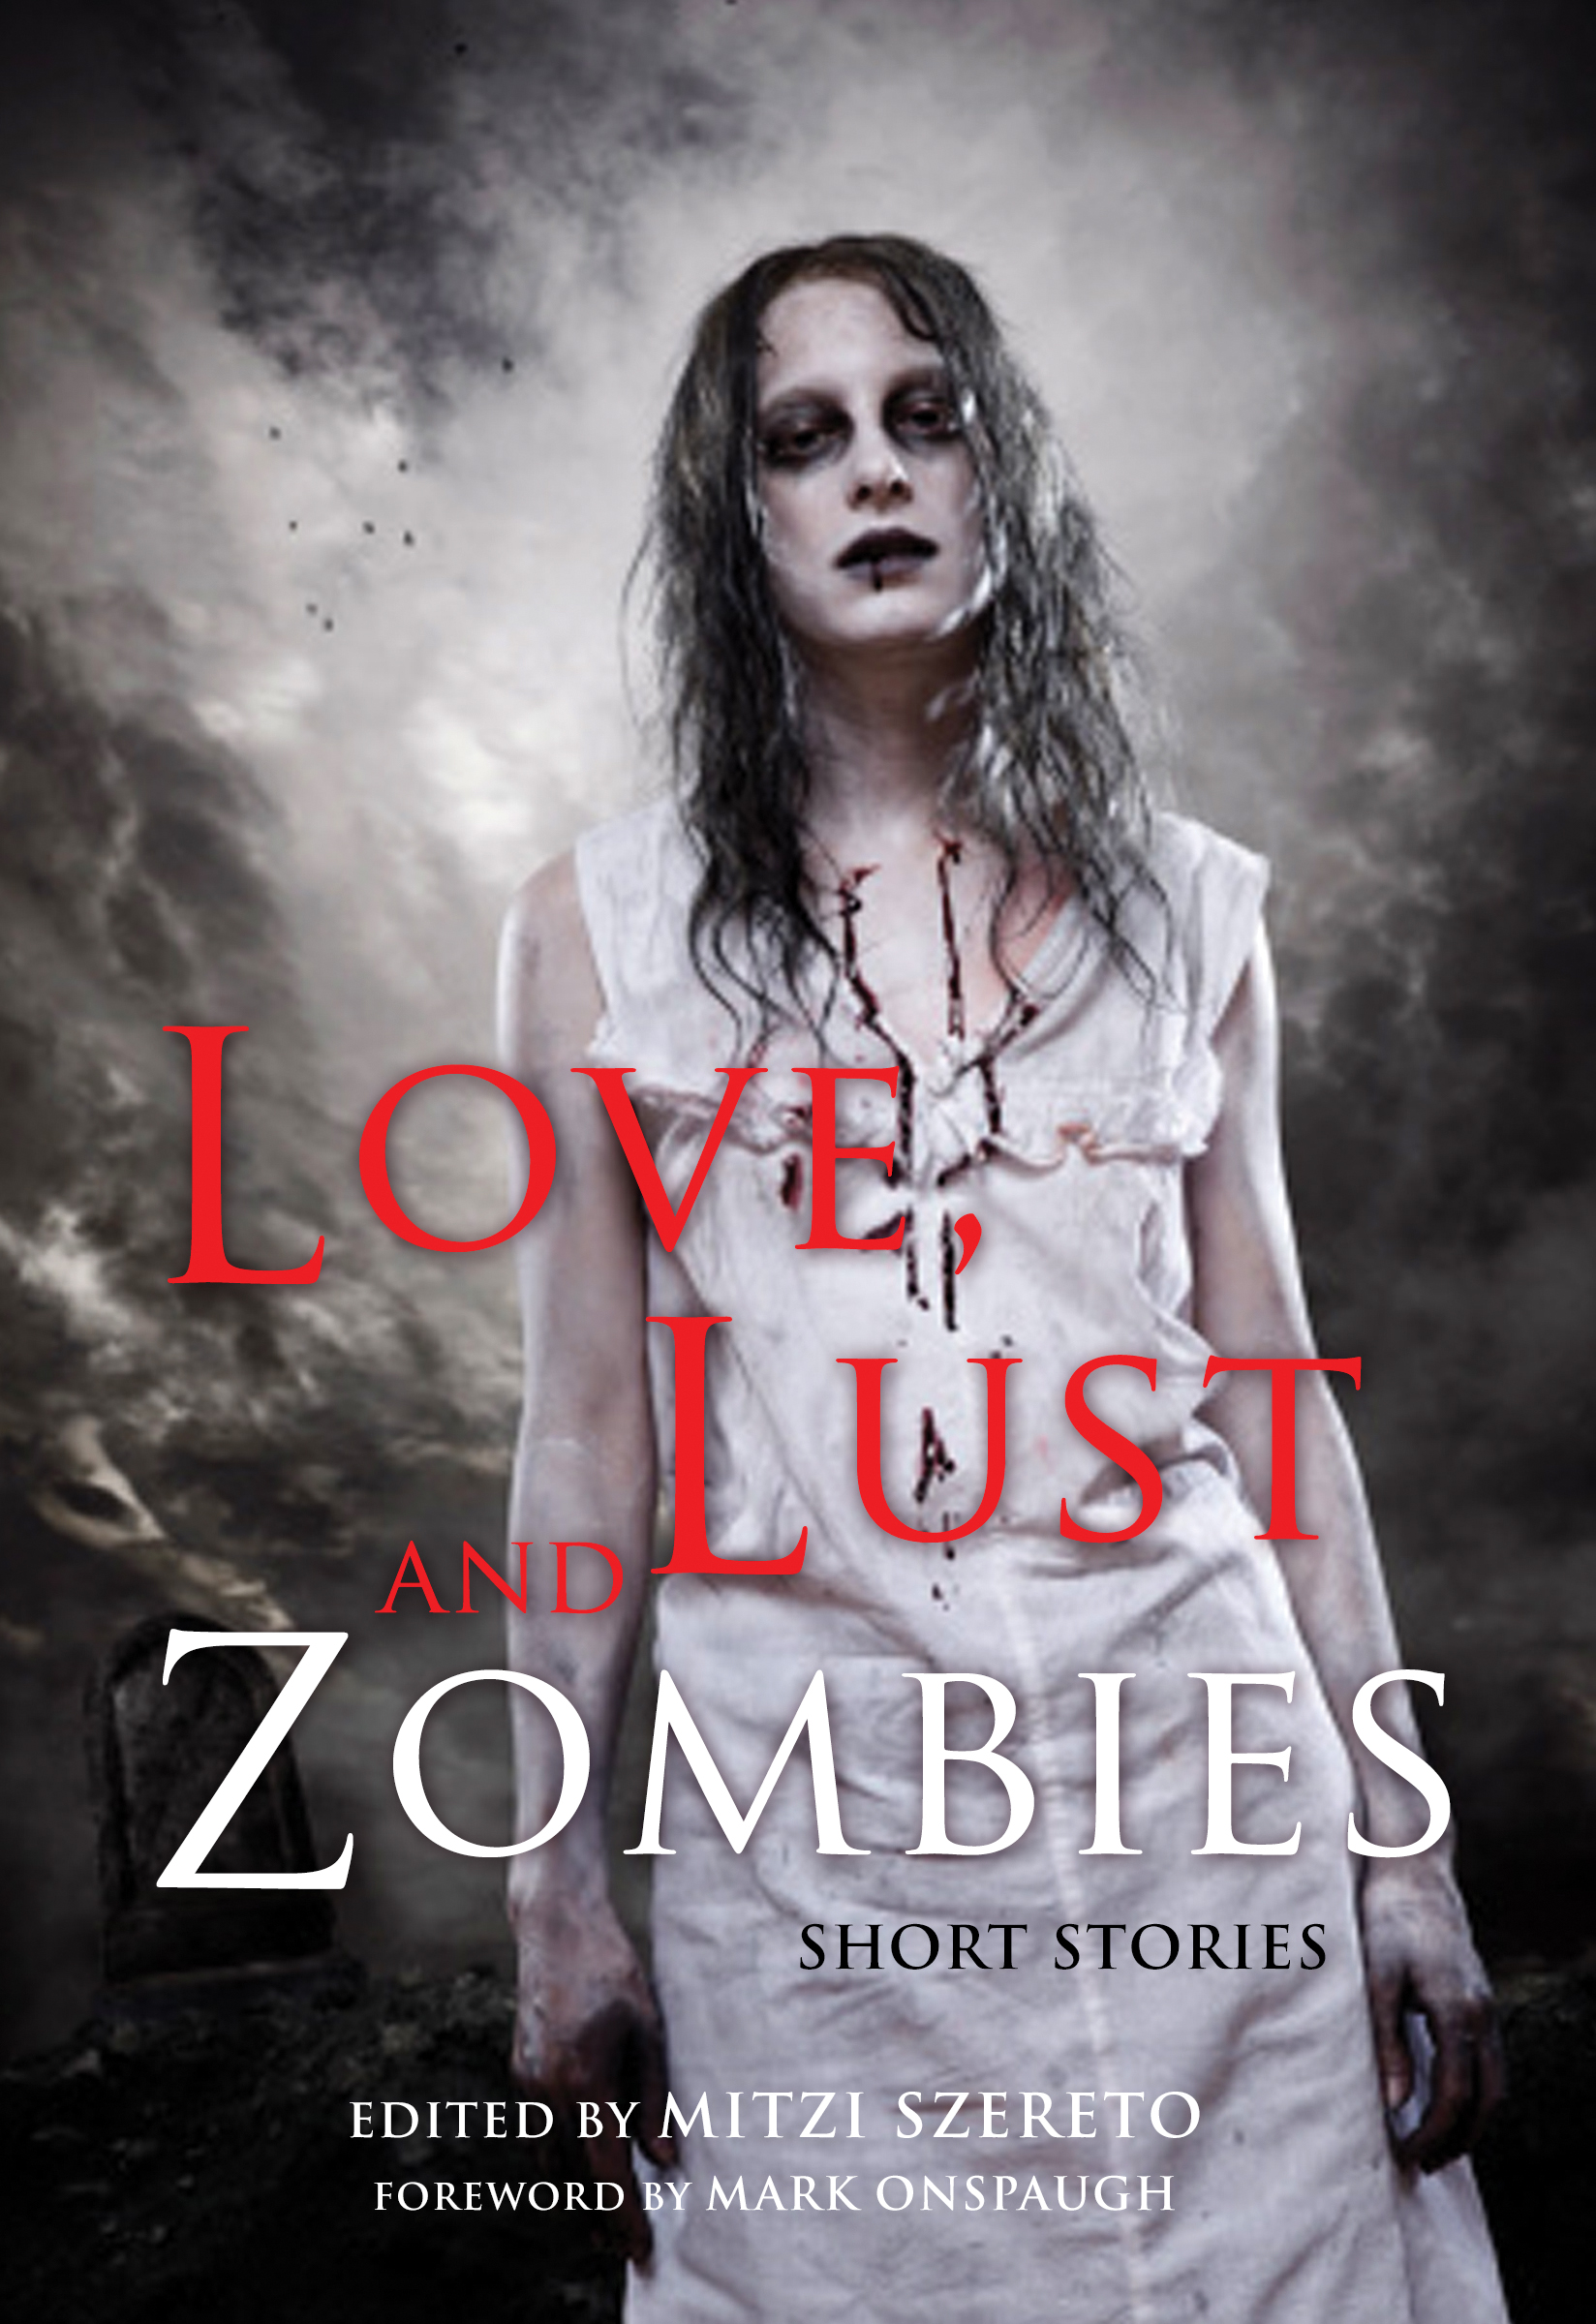 Love, Lust and Zombies: Short Stories